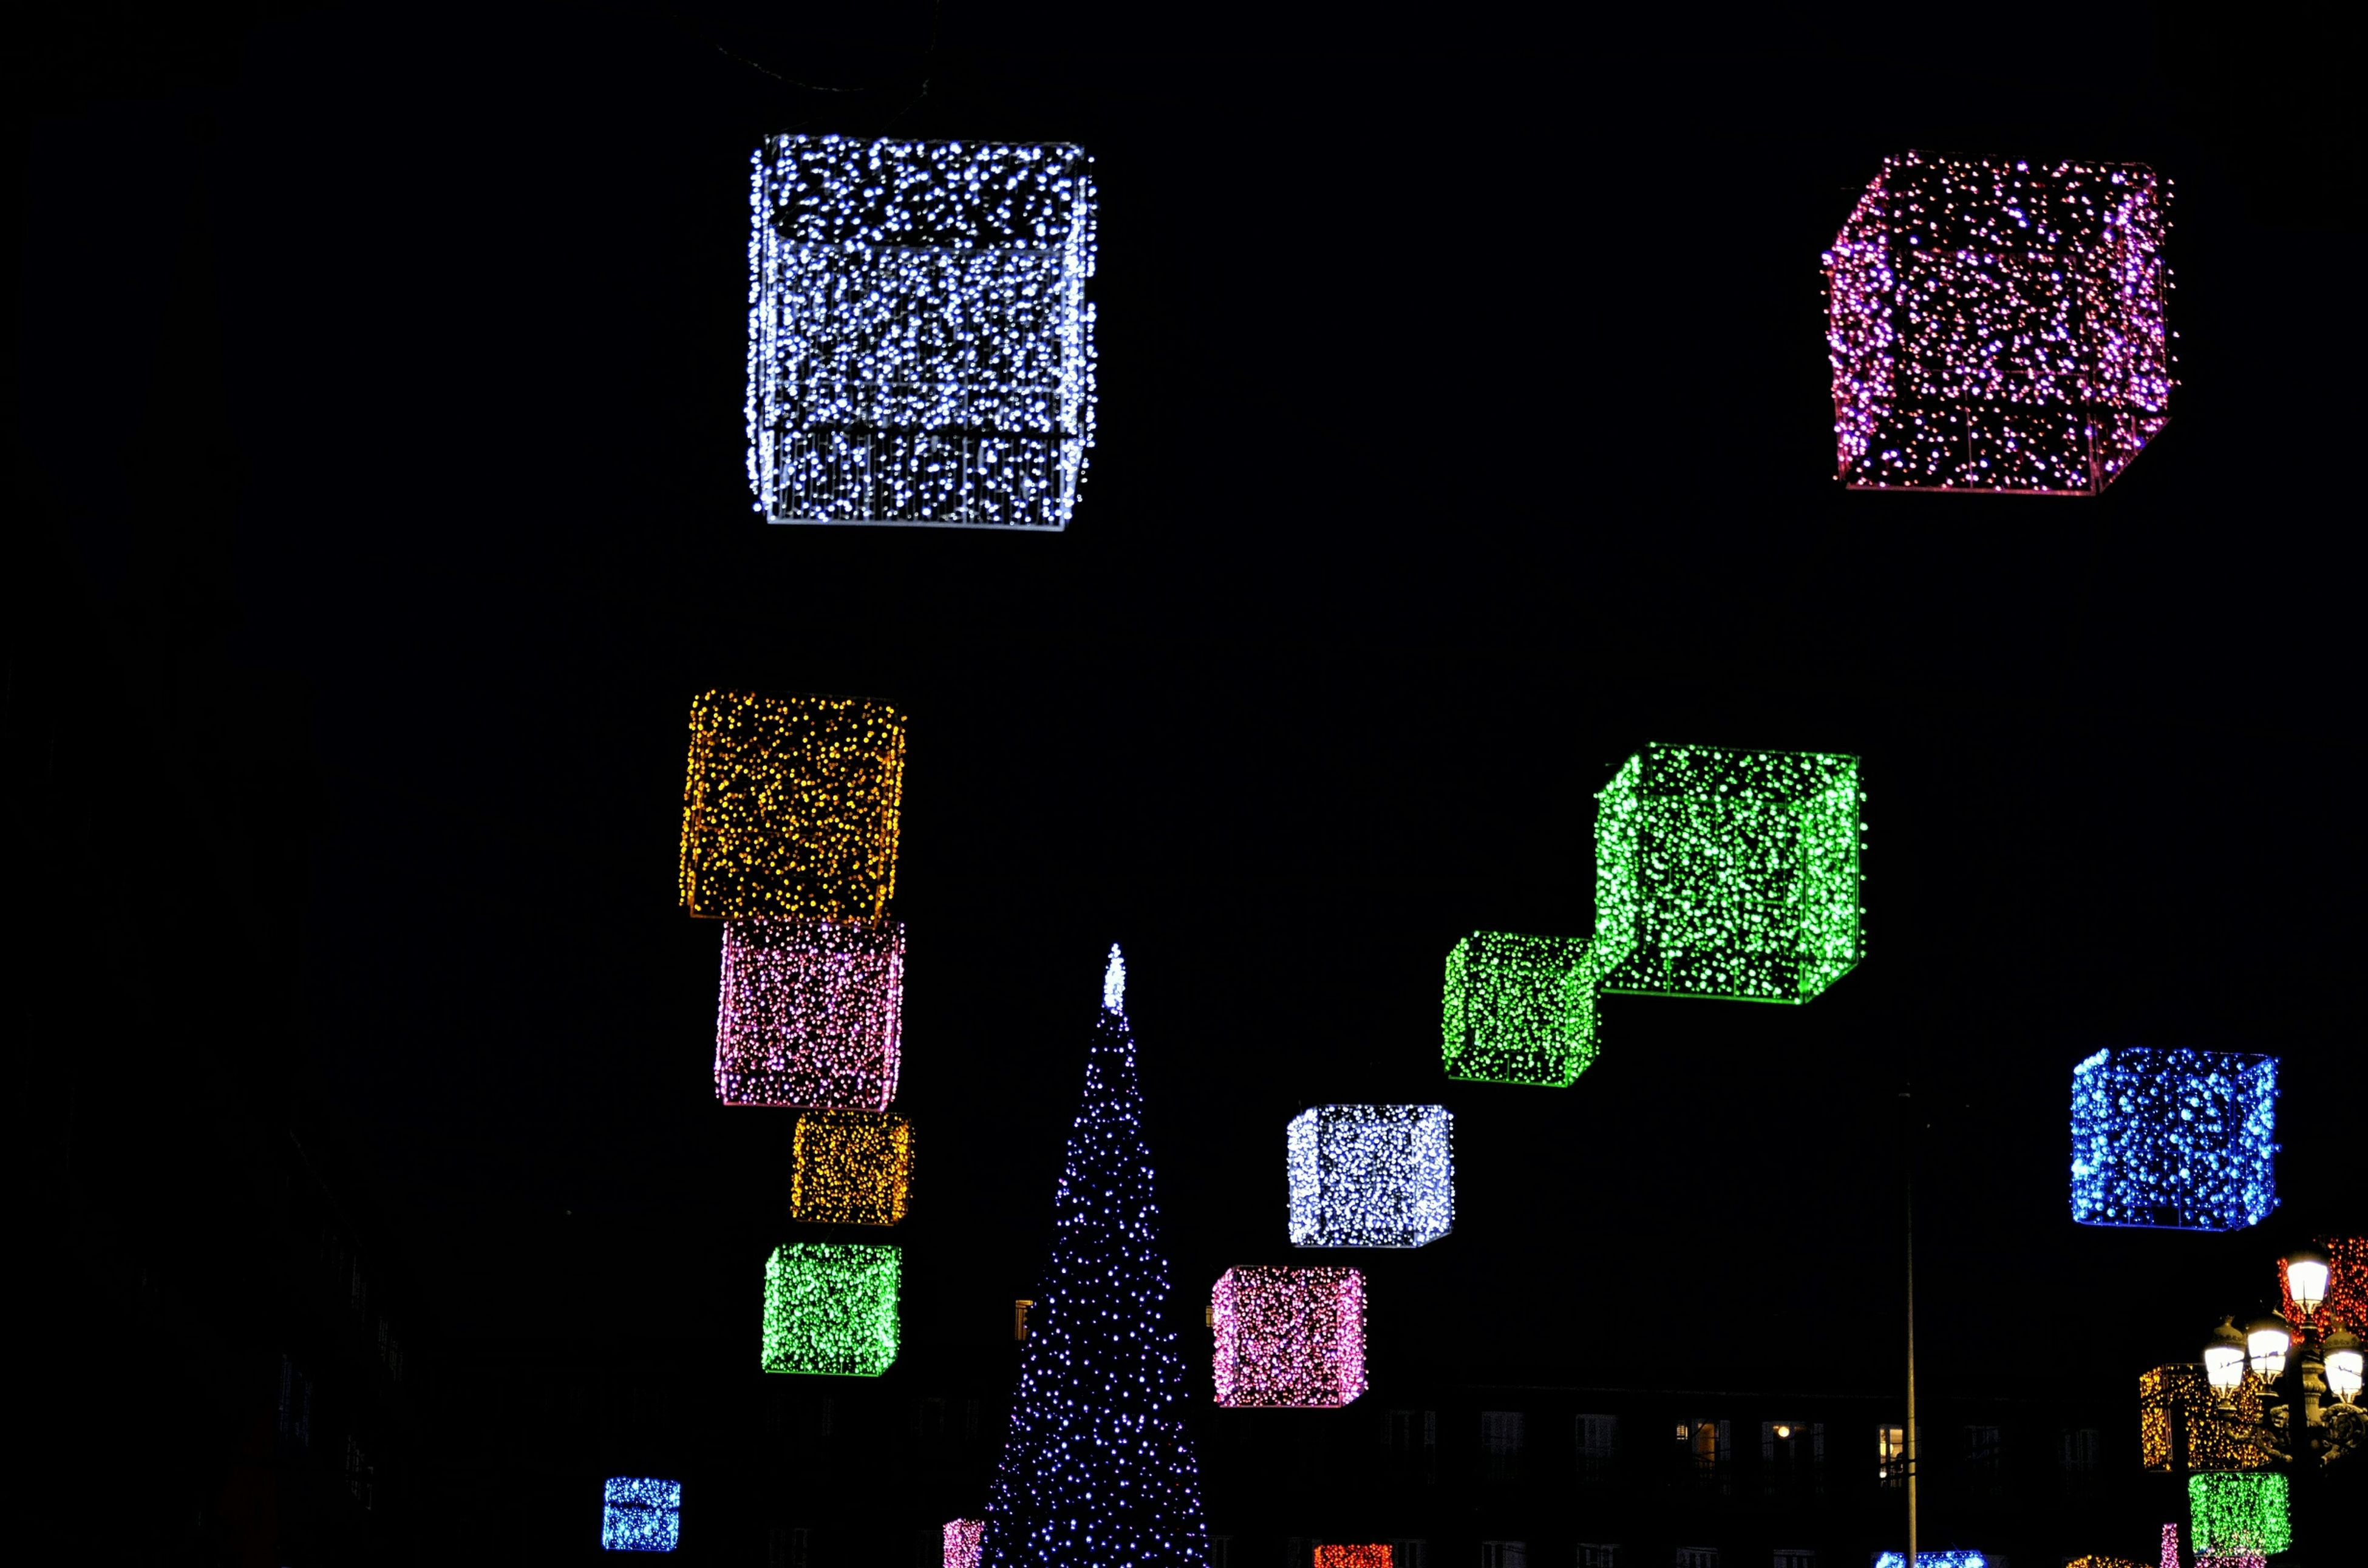 illuminated, night, text, communication, low angle view, hanging, multi colored, western script, decoration, indoors, no people, christmas, celebration, lighting equipment, variation, blue, abundance, number, dark, non-western script